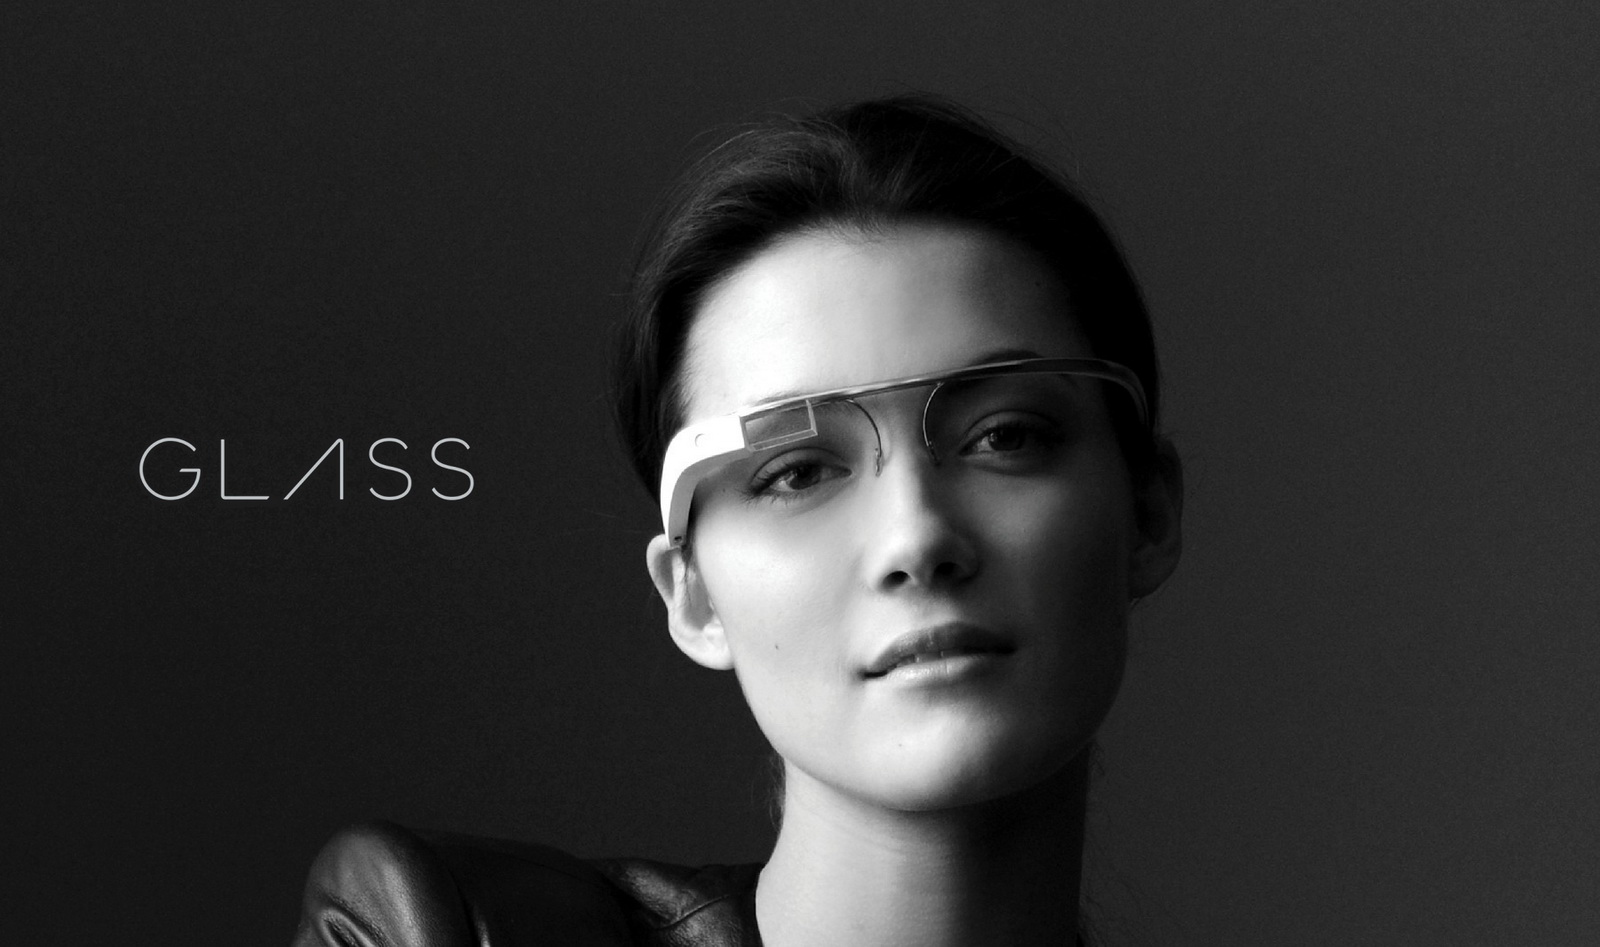 Google Glass Wallpaper